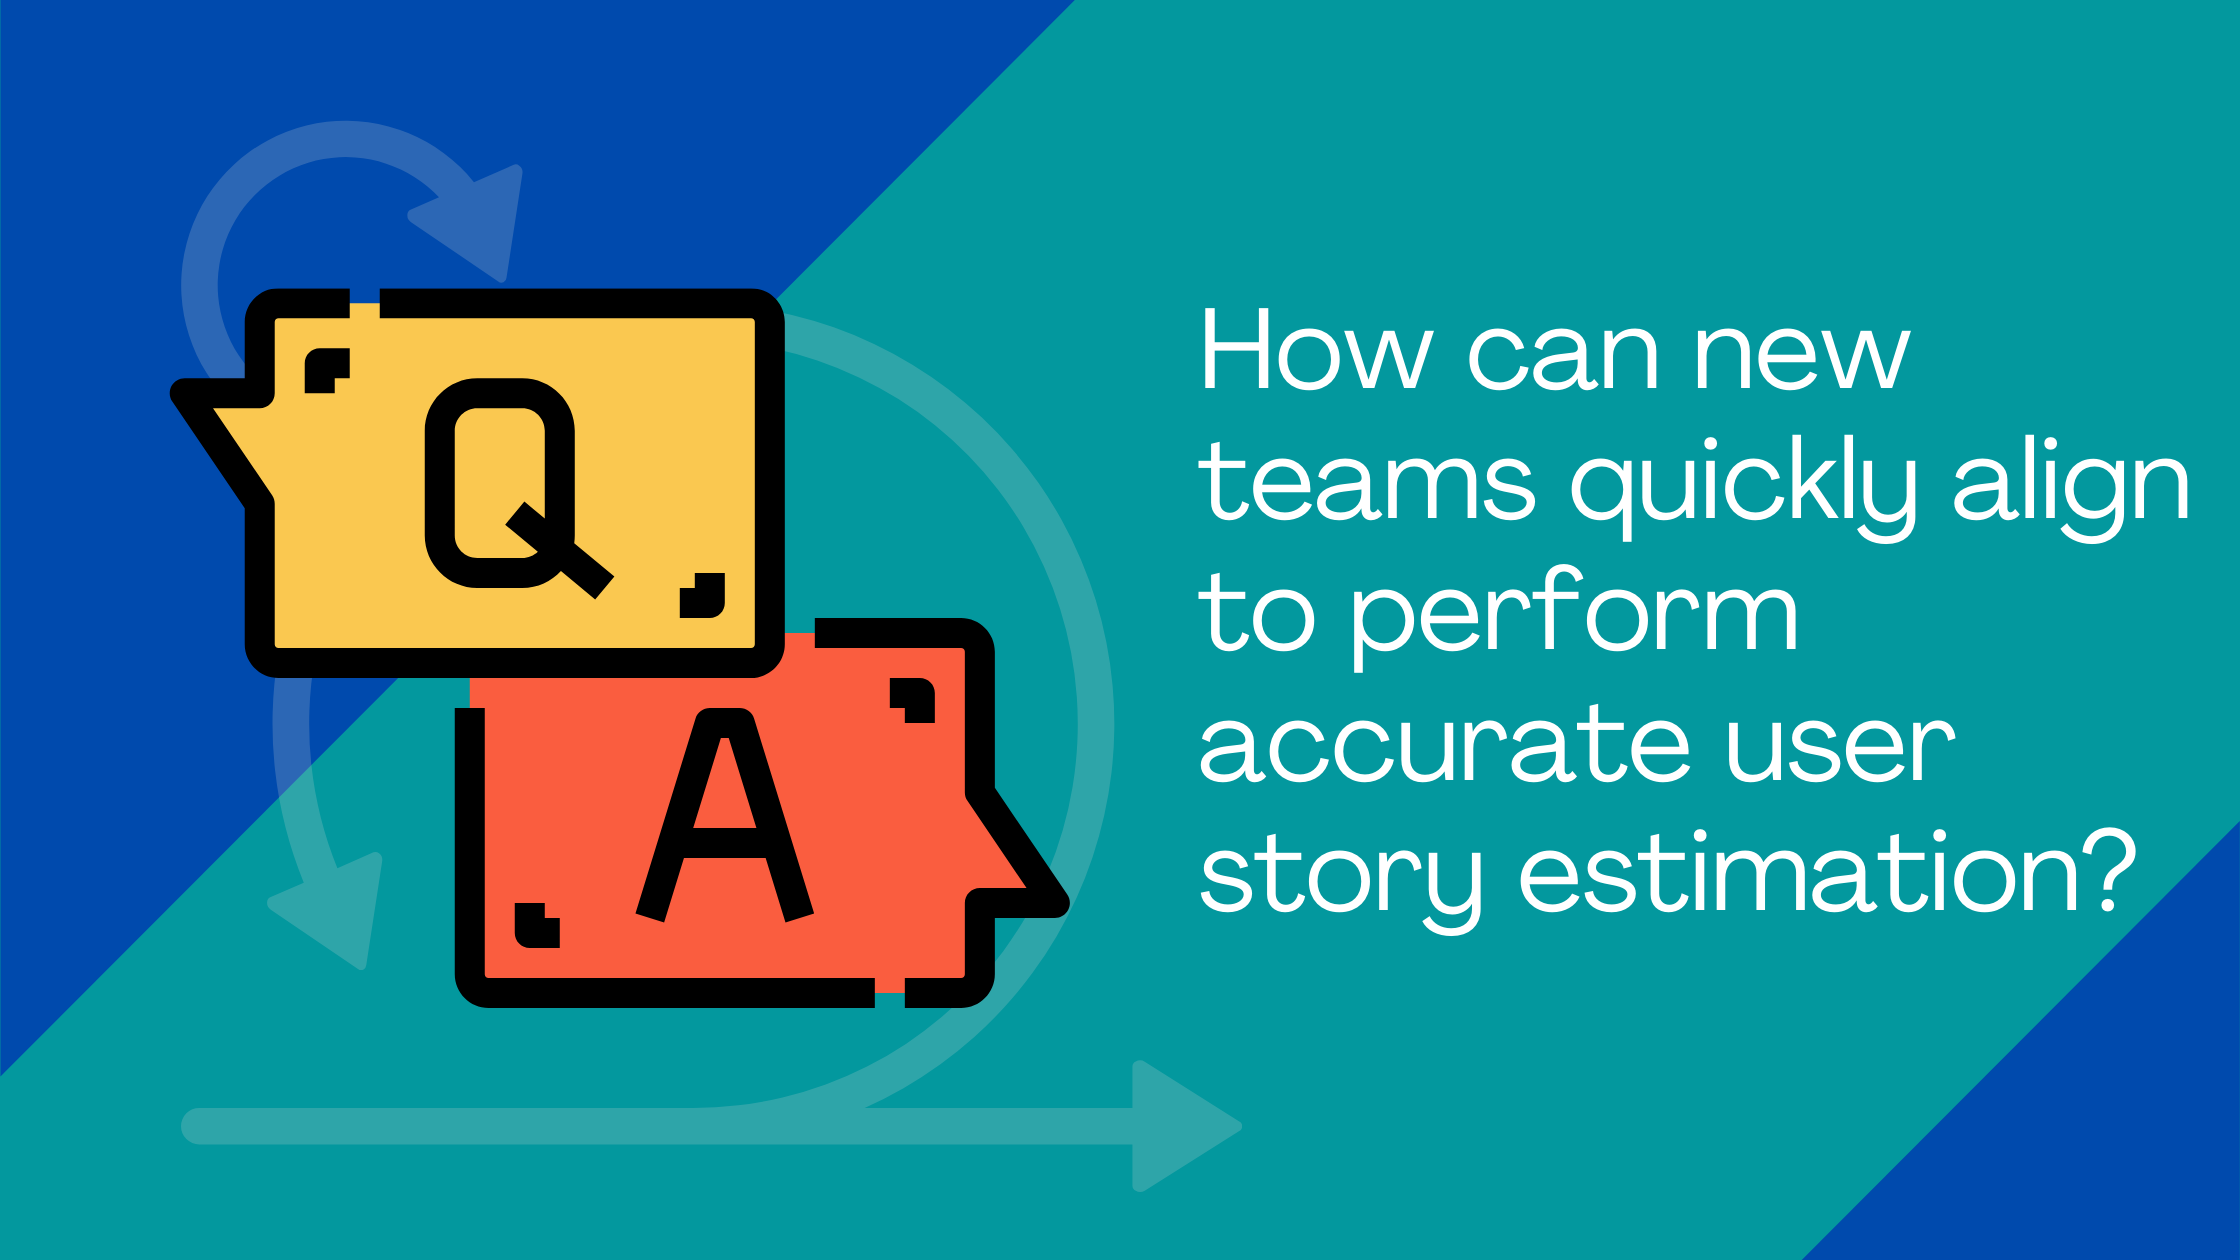 How can new teams quickly align to perform accurate user story estimation?